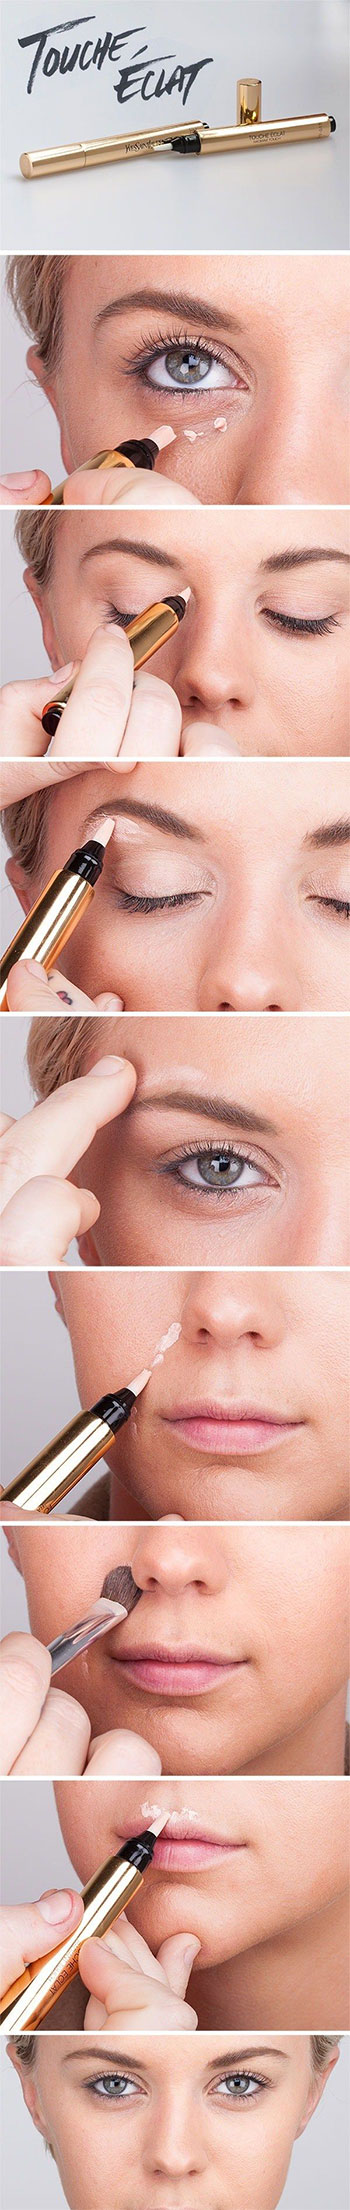 15-Easy-Natural-Make-Up-Tutorials-2014-For-Beginners-Learners-7